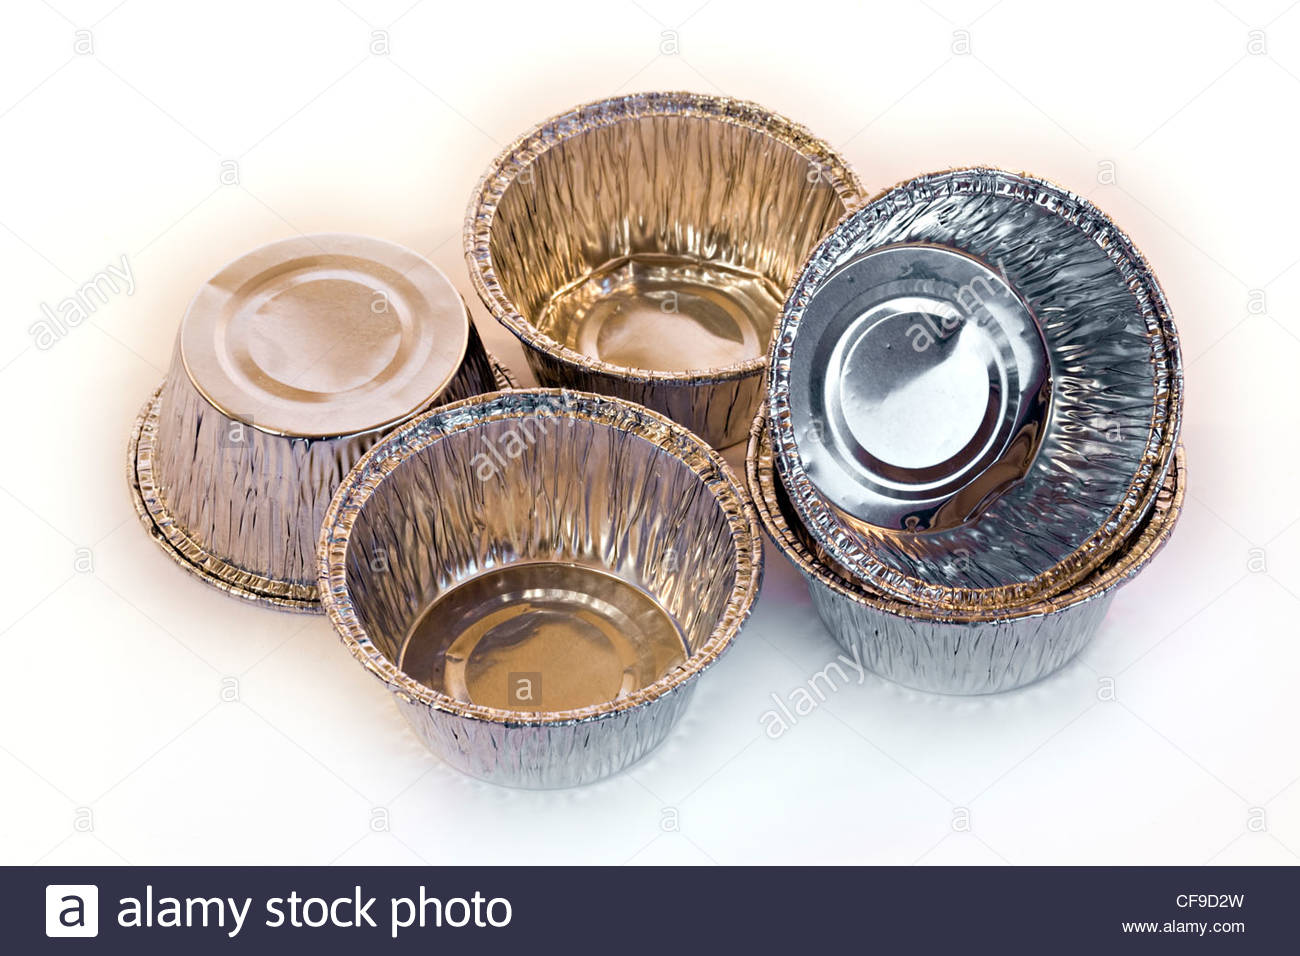 Close-up of cup cake tins on white background - Stock Image